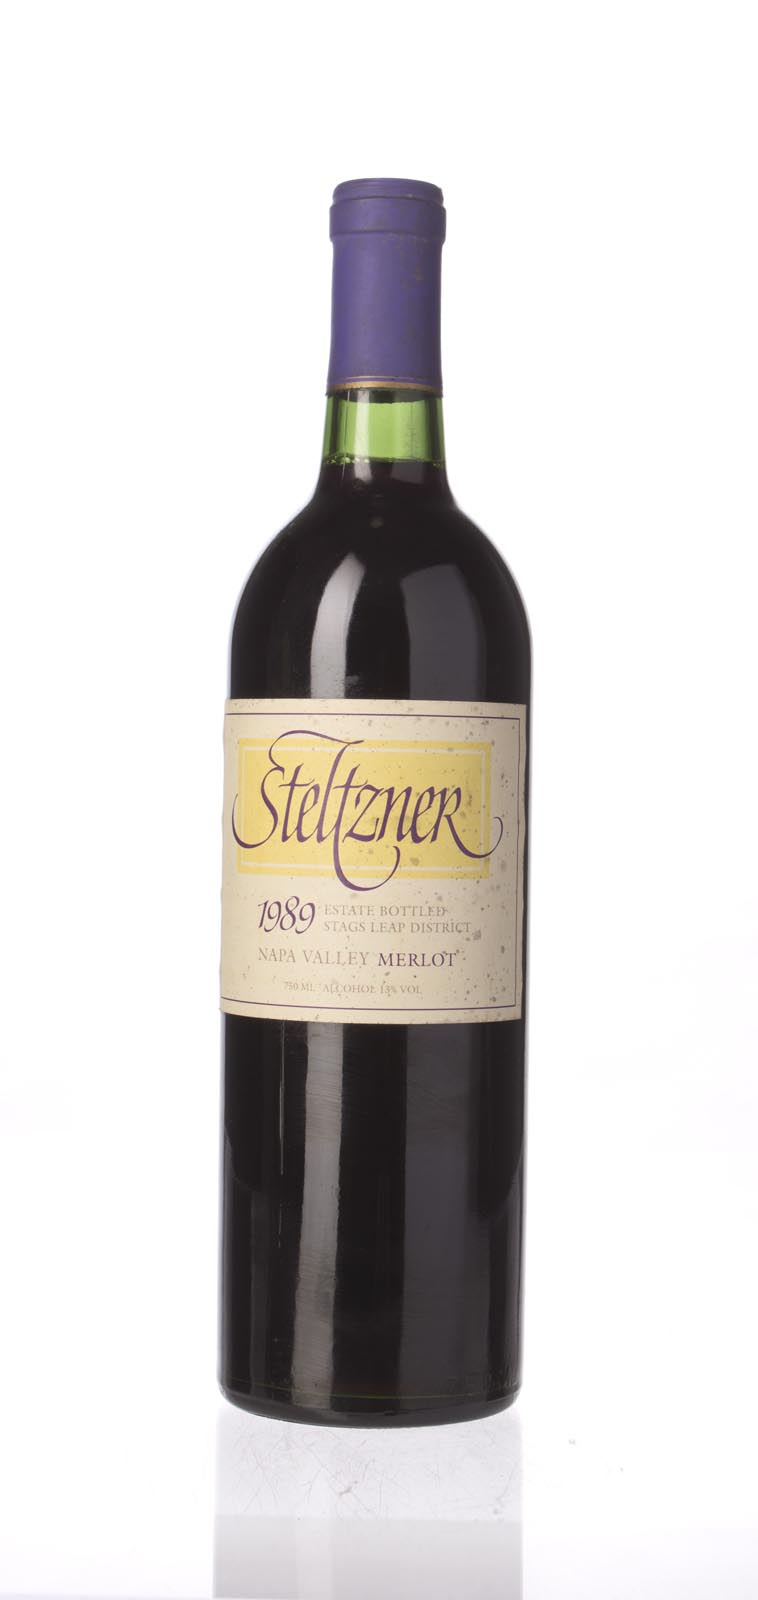 St. Clement Merlot Napa Valley 1997, 750mL () from The BPW - Merchants of rare and fine wines.